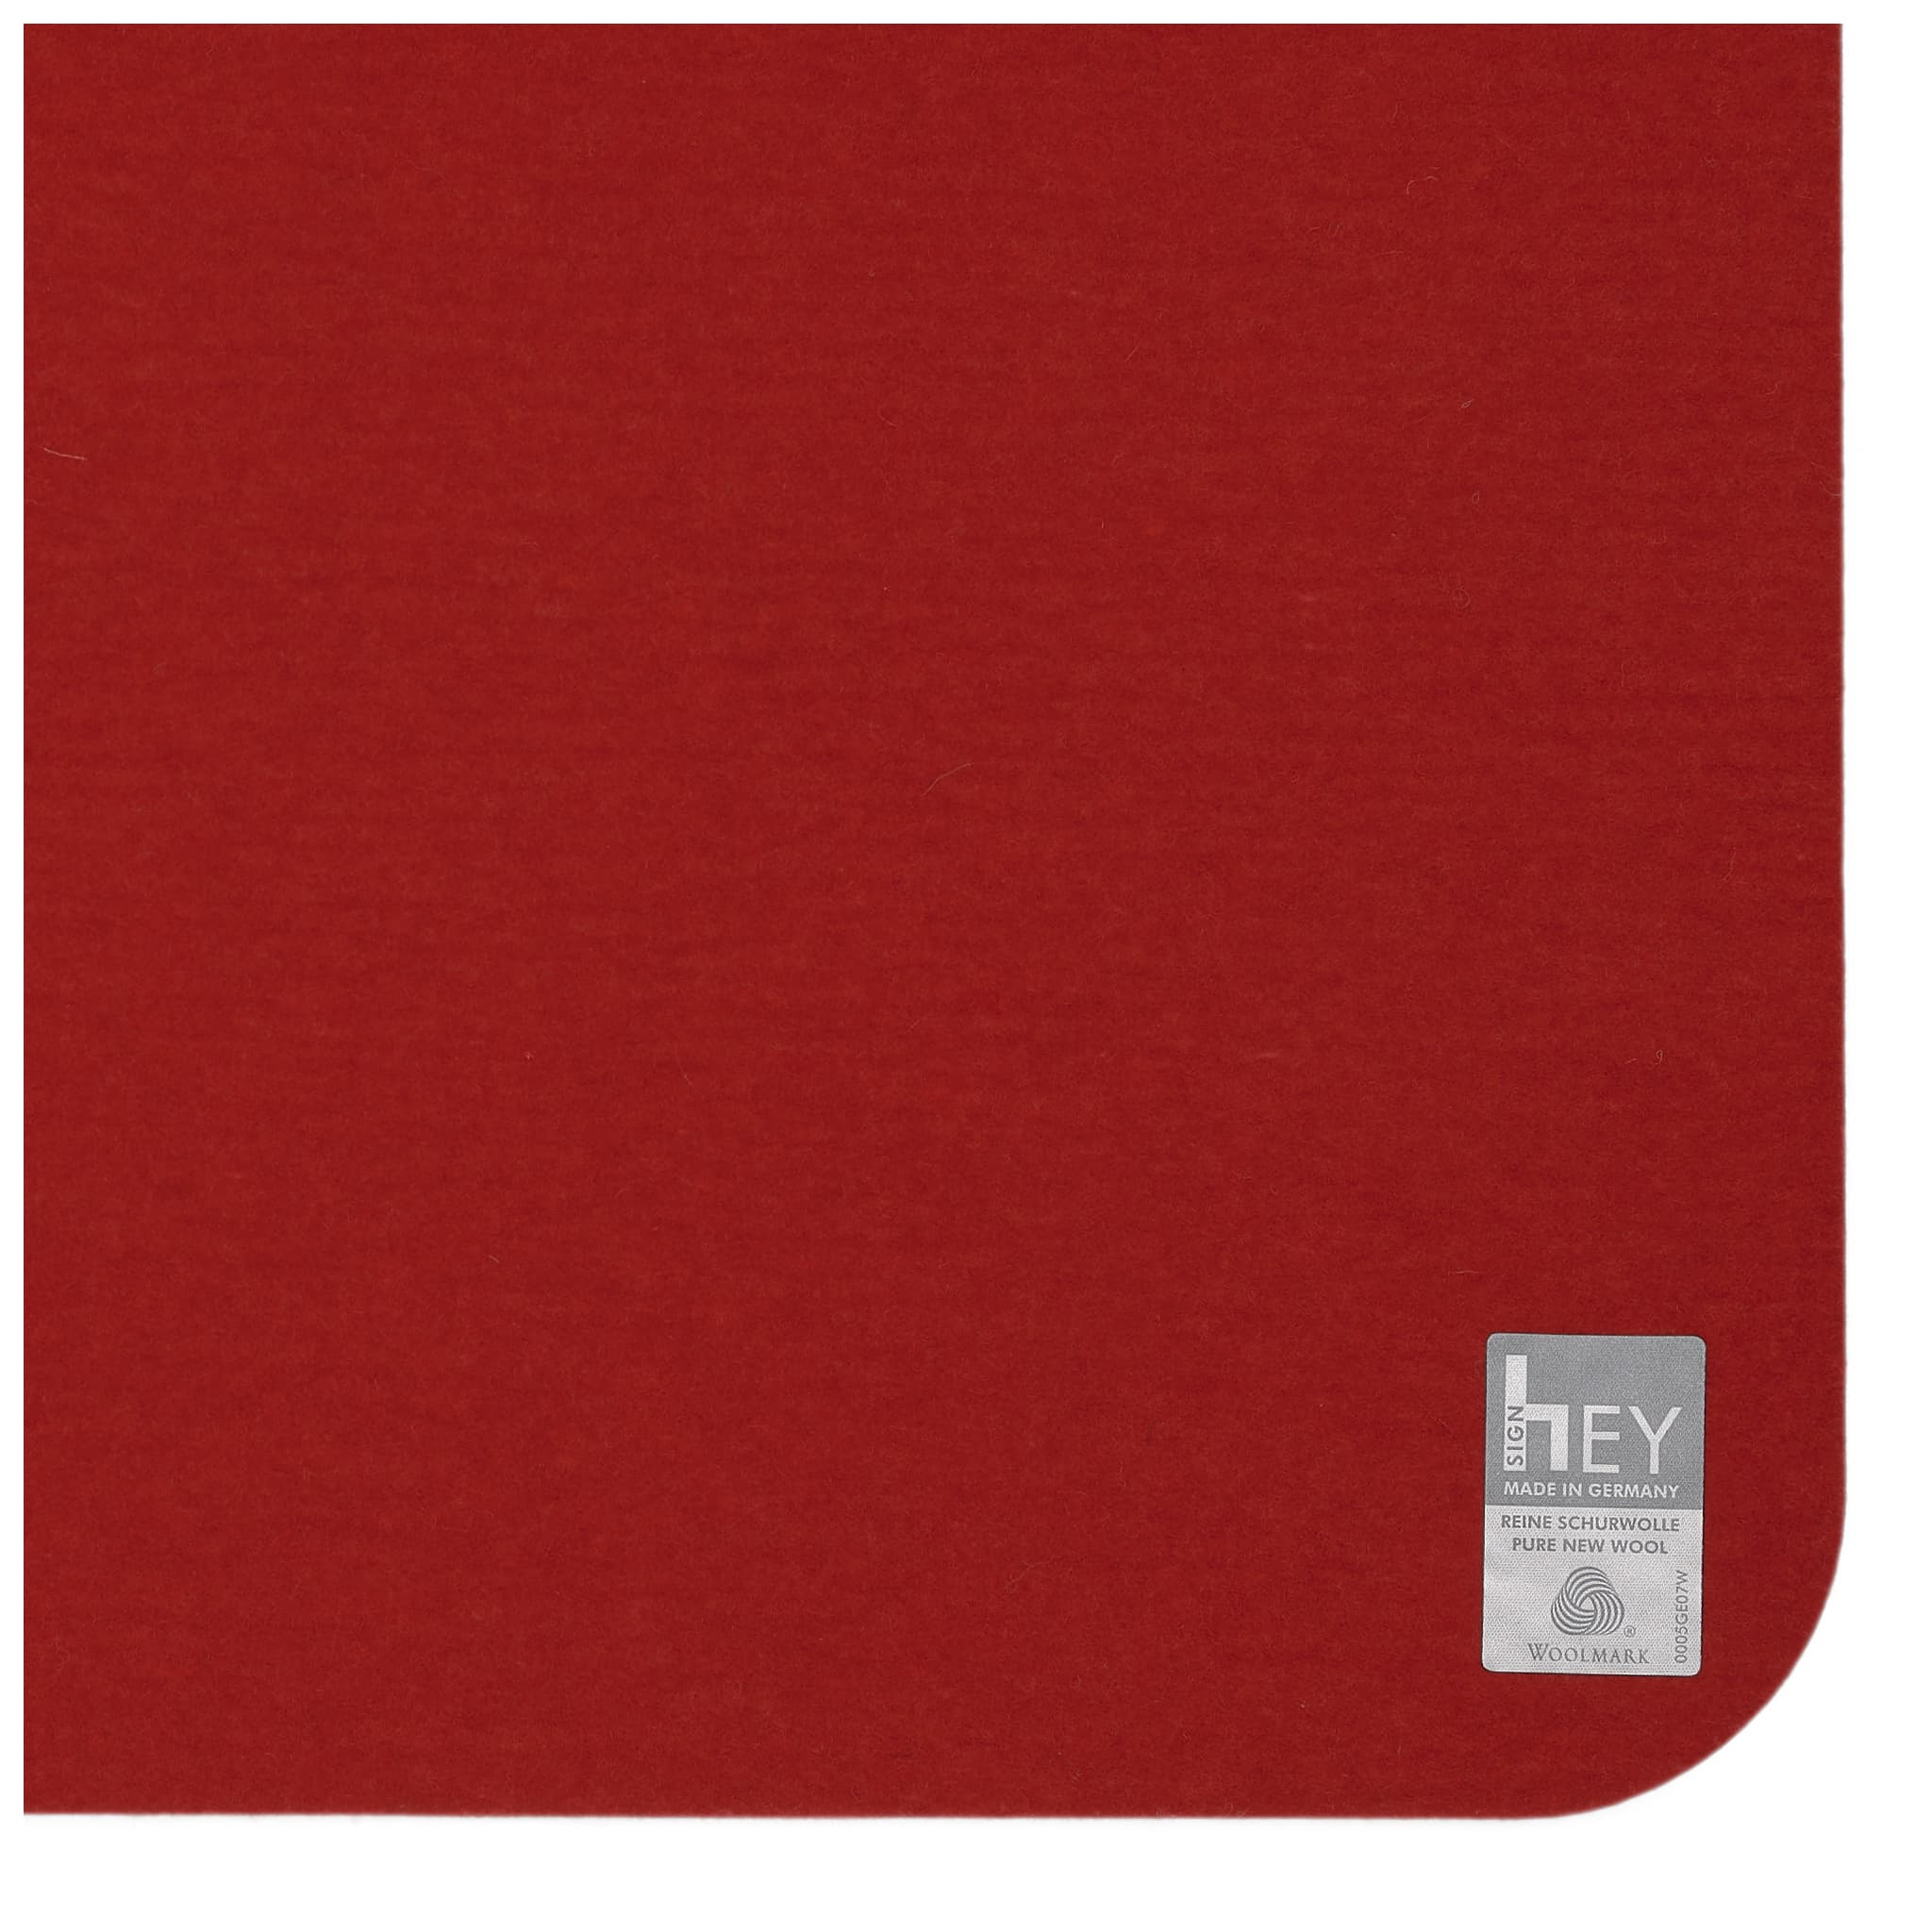 Rectangular Felt Placemat in Red by Hey-Sign 300134502 looking at Closeup-Label